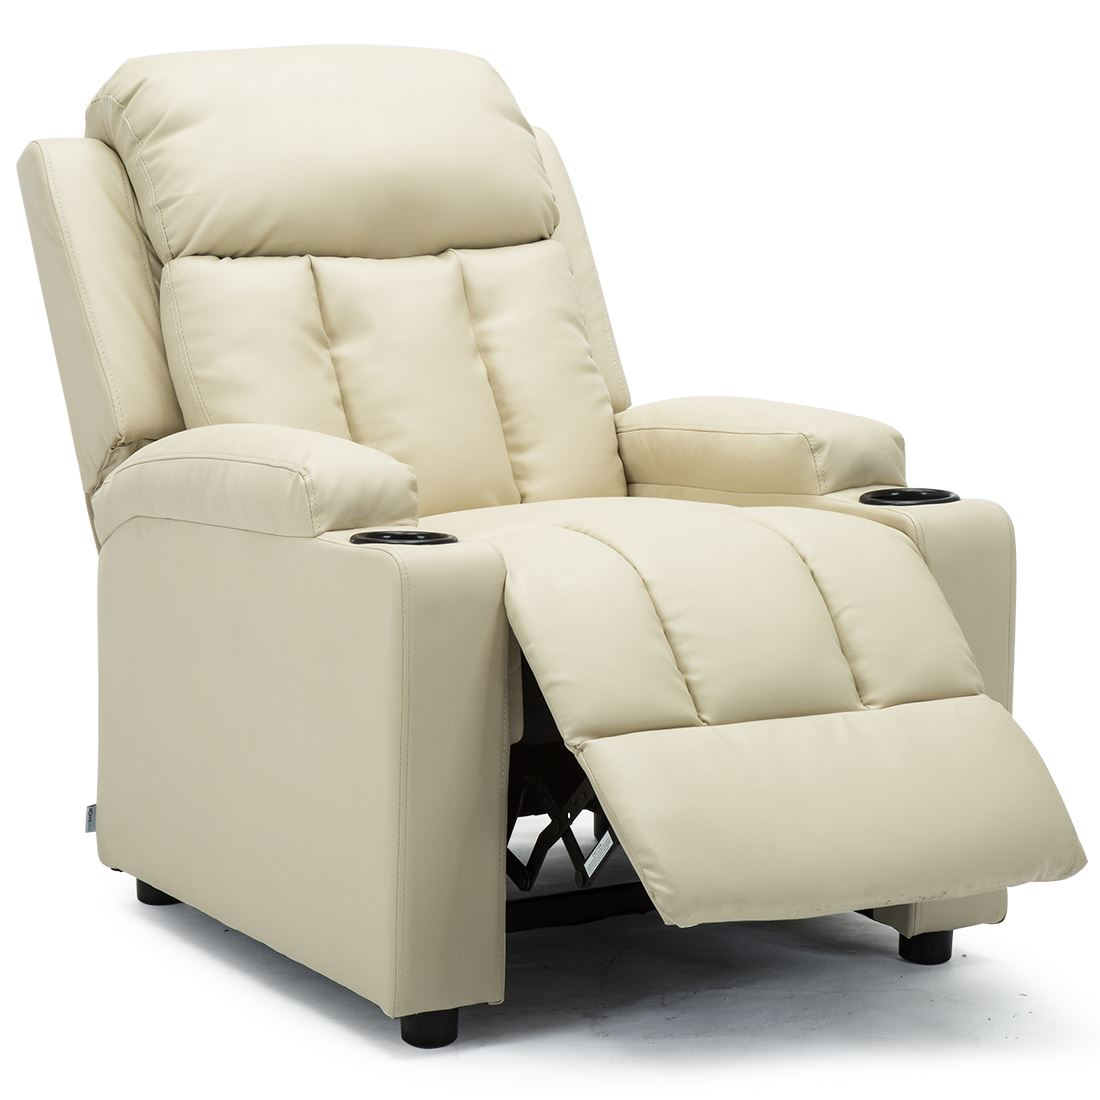 STUDIO-LEATHER-RECLINER-w-DRINK-HOLDERS-ARMCHAIR-SOFA-CHAIR-CINEMA-GAMING thumbnail 23